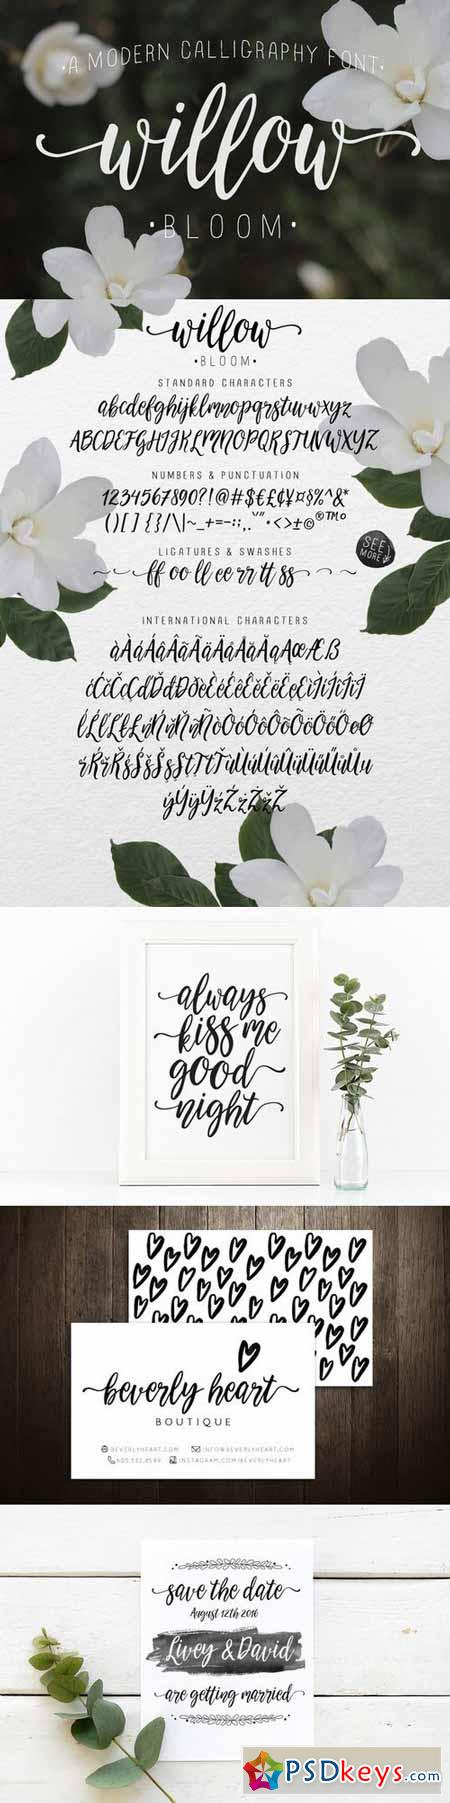 Calligraphy font willow bloom free download